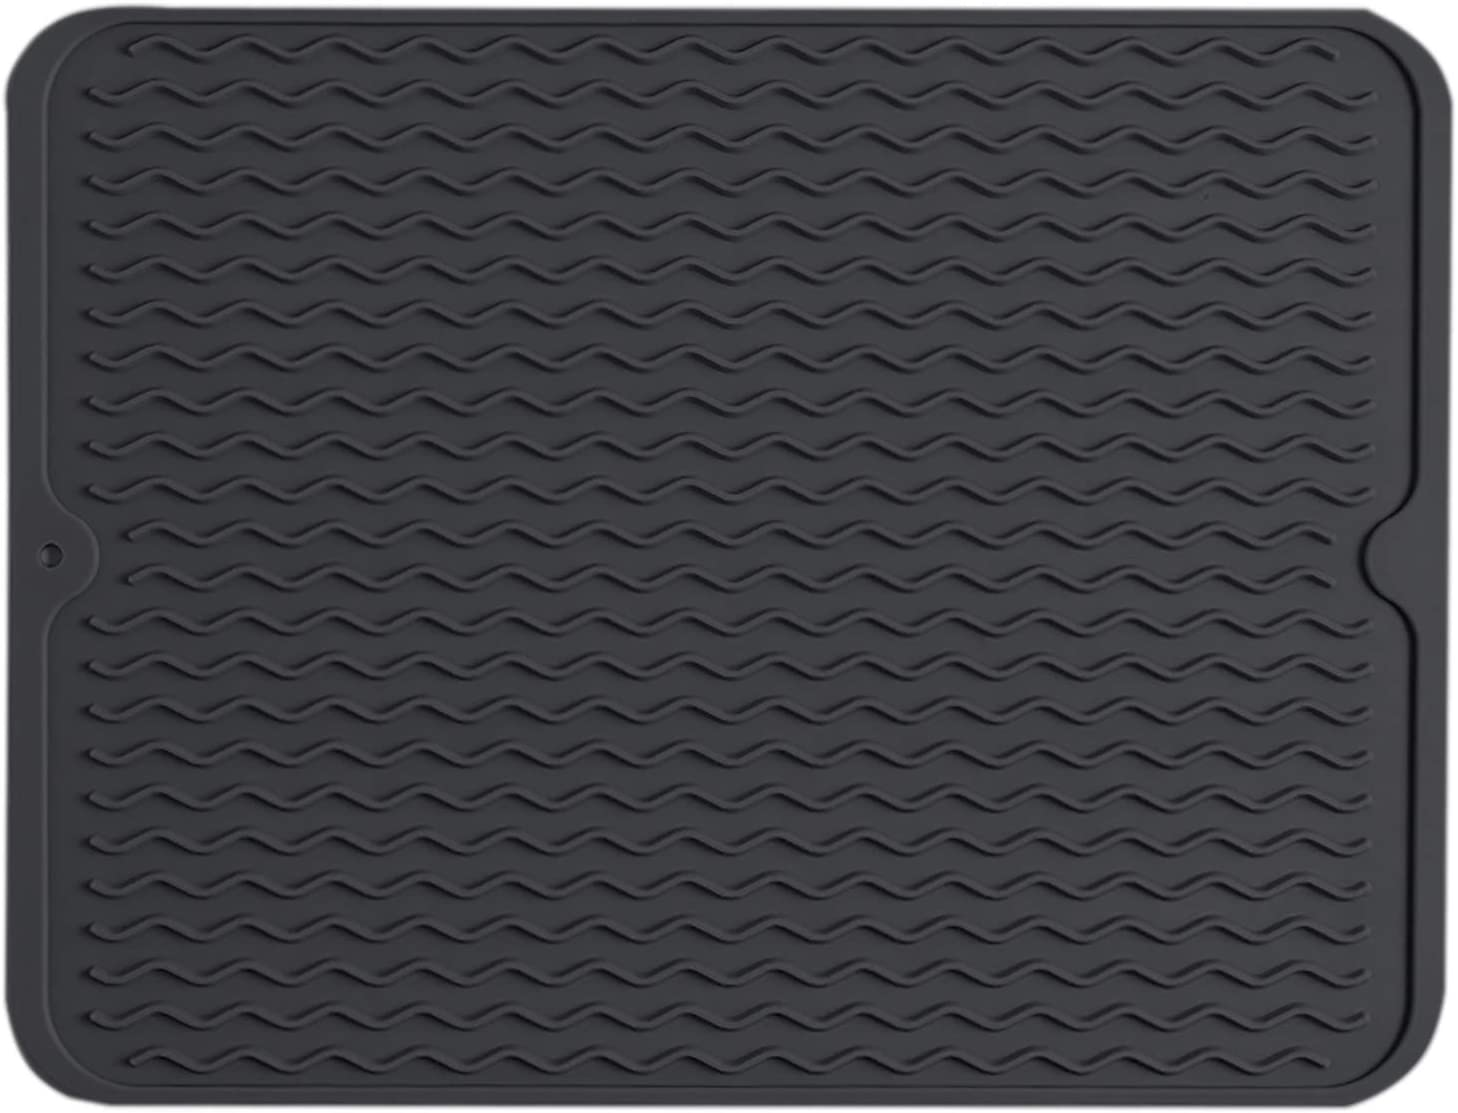 MYLIFFRI Silicone Dish Drying Mat - Large Heat Resistant Counter Top Pad, Food Grade and Flexible Draining & Sink Mat for Pots, Pans, Glassware, Fruits & vegetables (16 x 12 inches, Black)